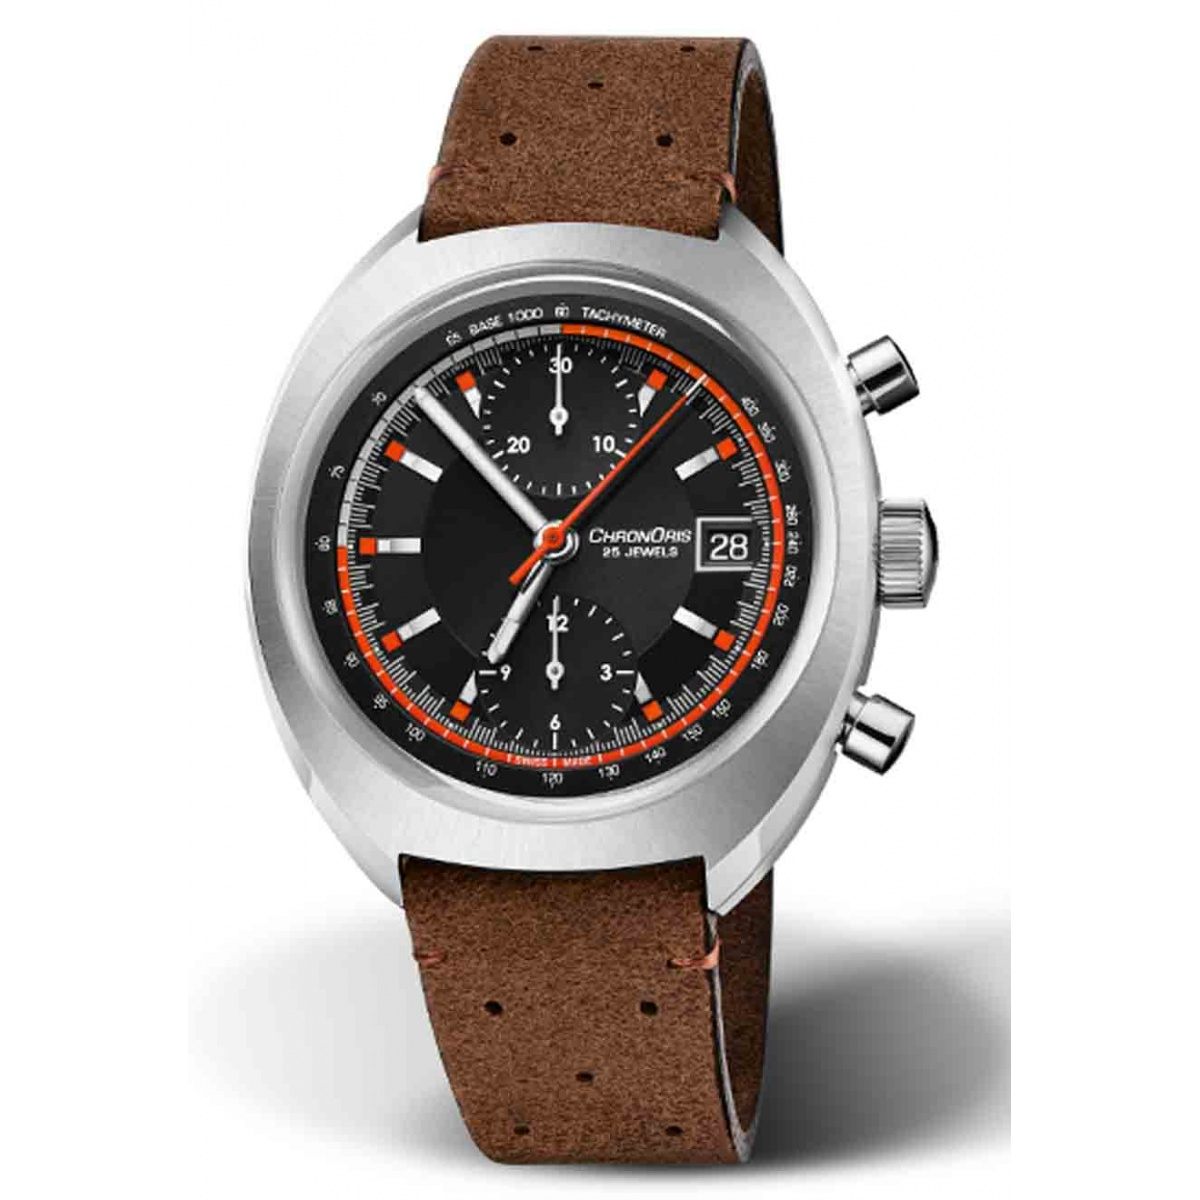 ORIS CHRONORIS LIMITED EDITION 100 M ∅40 mm, Esfera negra, piel marrón